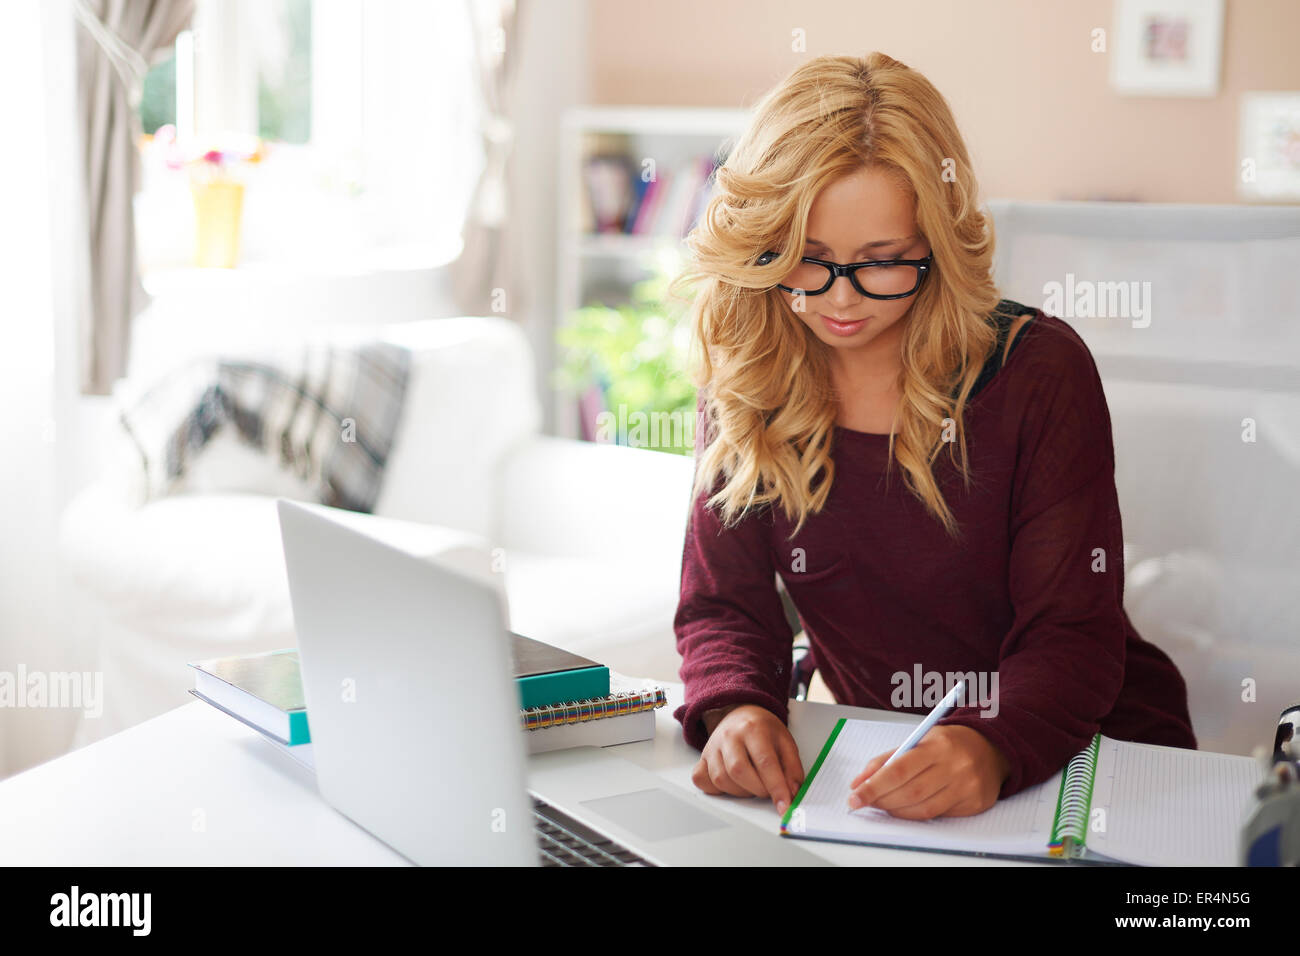 Blonde young girl doing homework after school. Debica, Poland - Stock Image